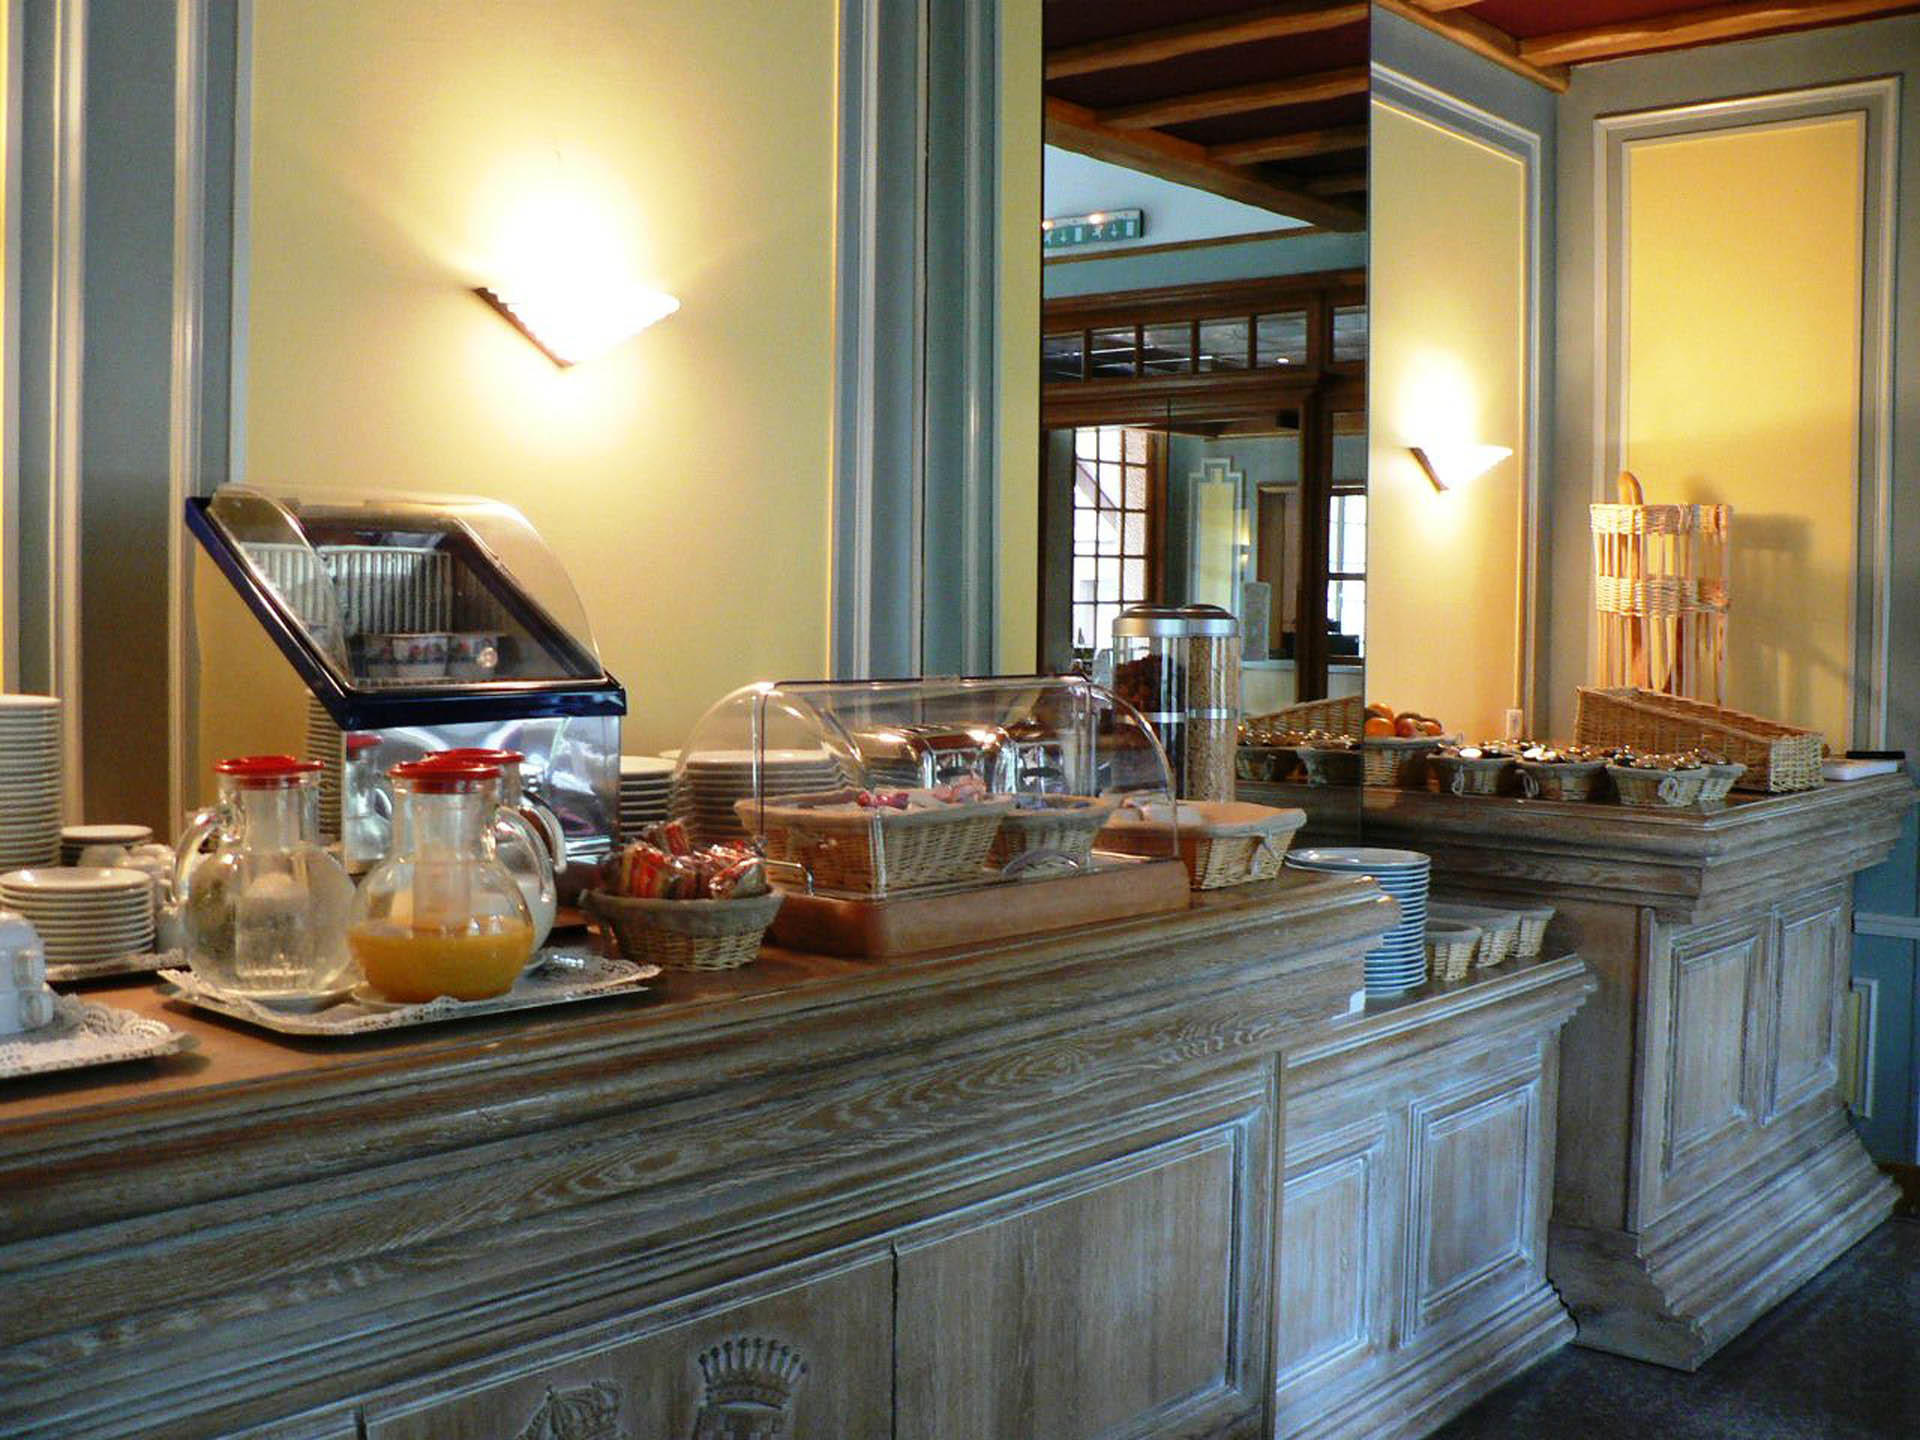 Breakfast at Le Continental Hotel in Forges-les-Eaux, France